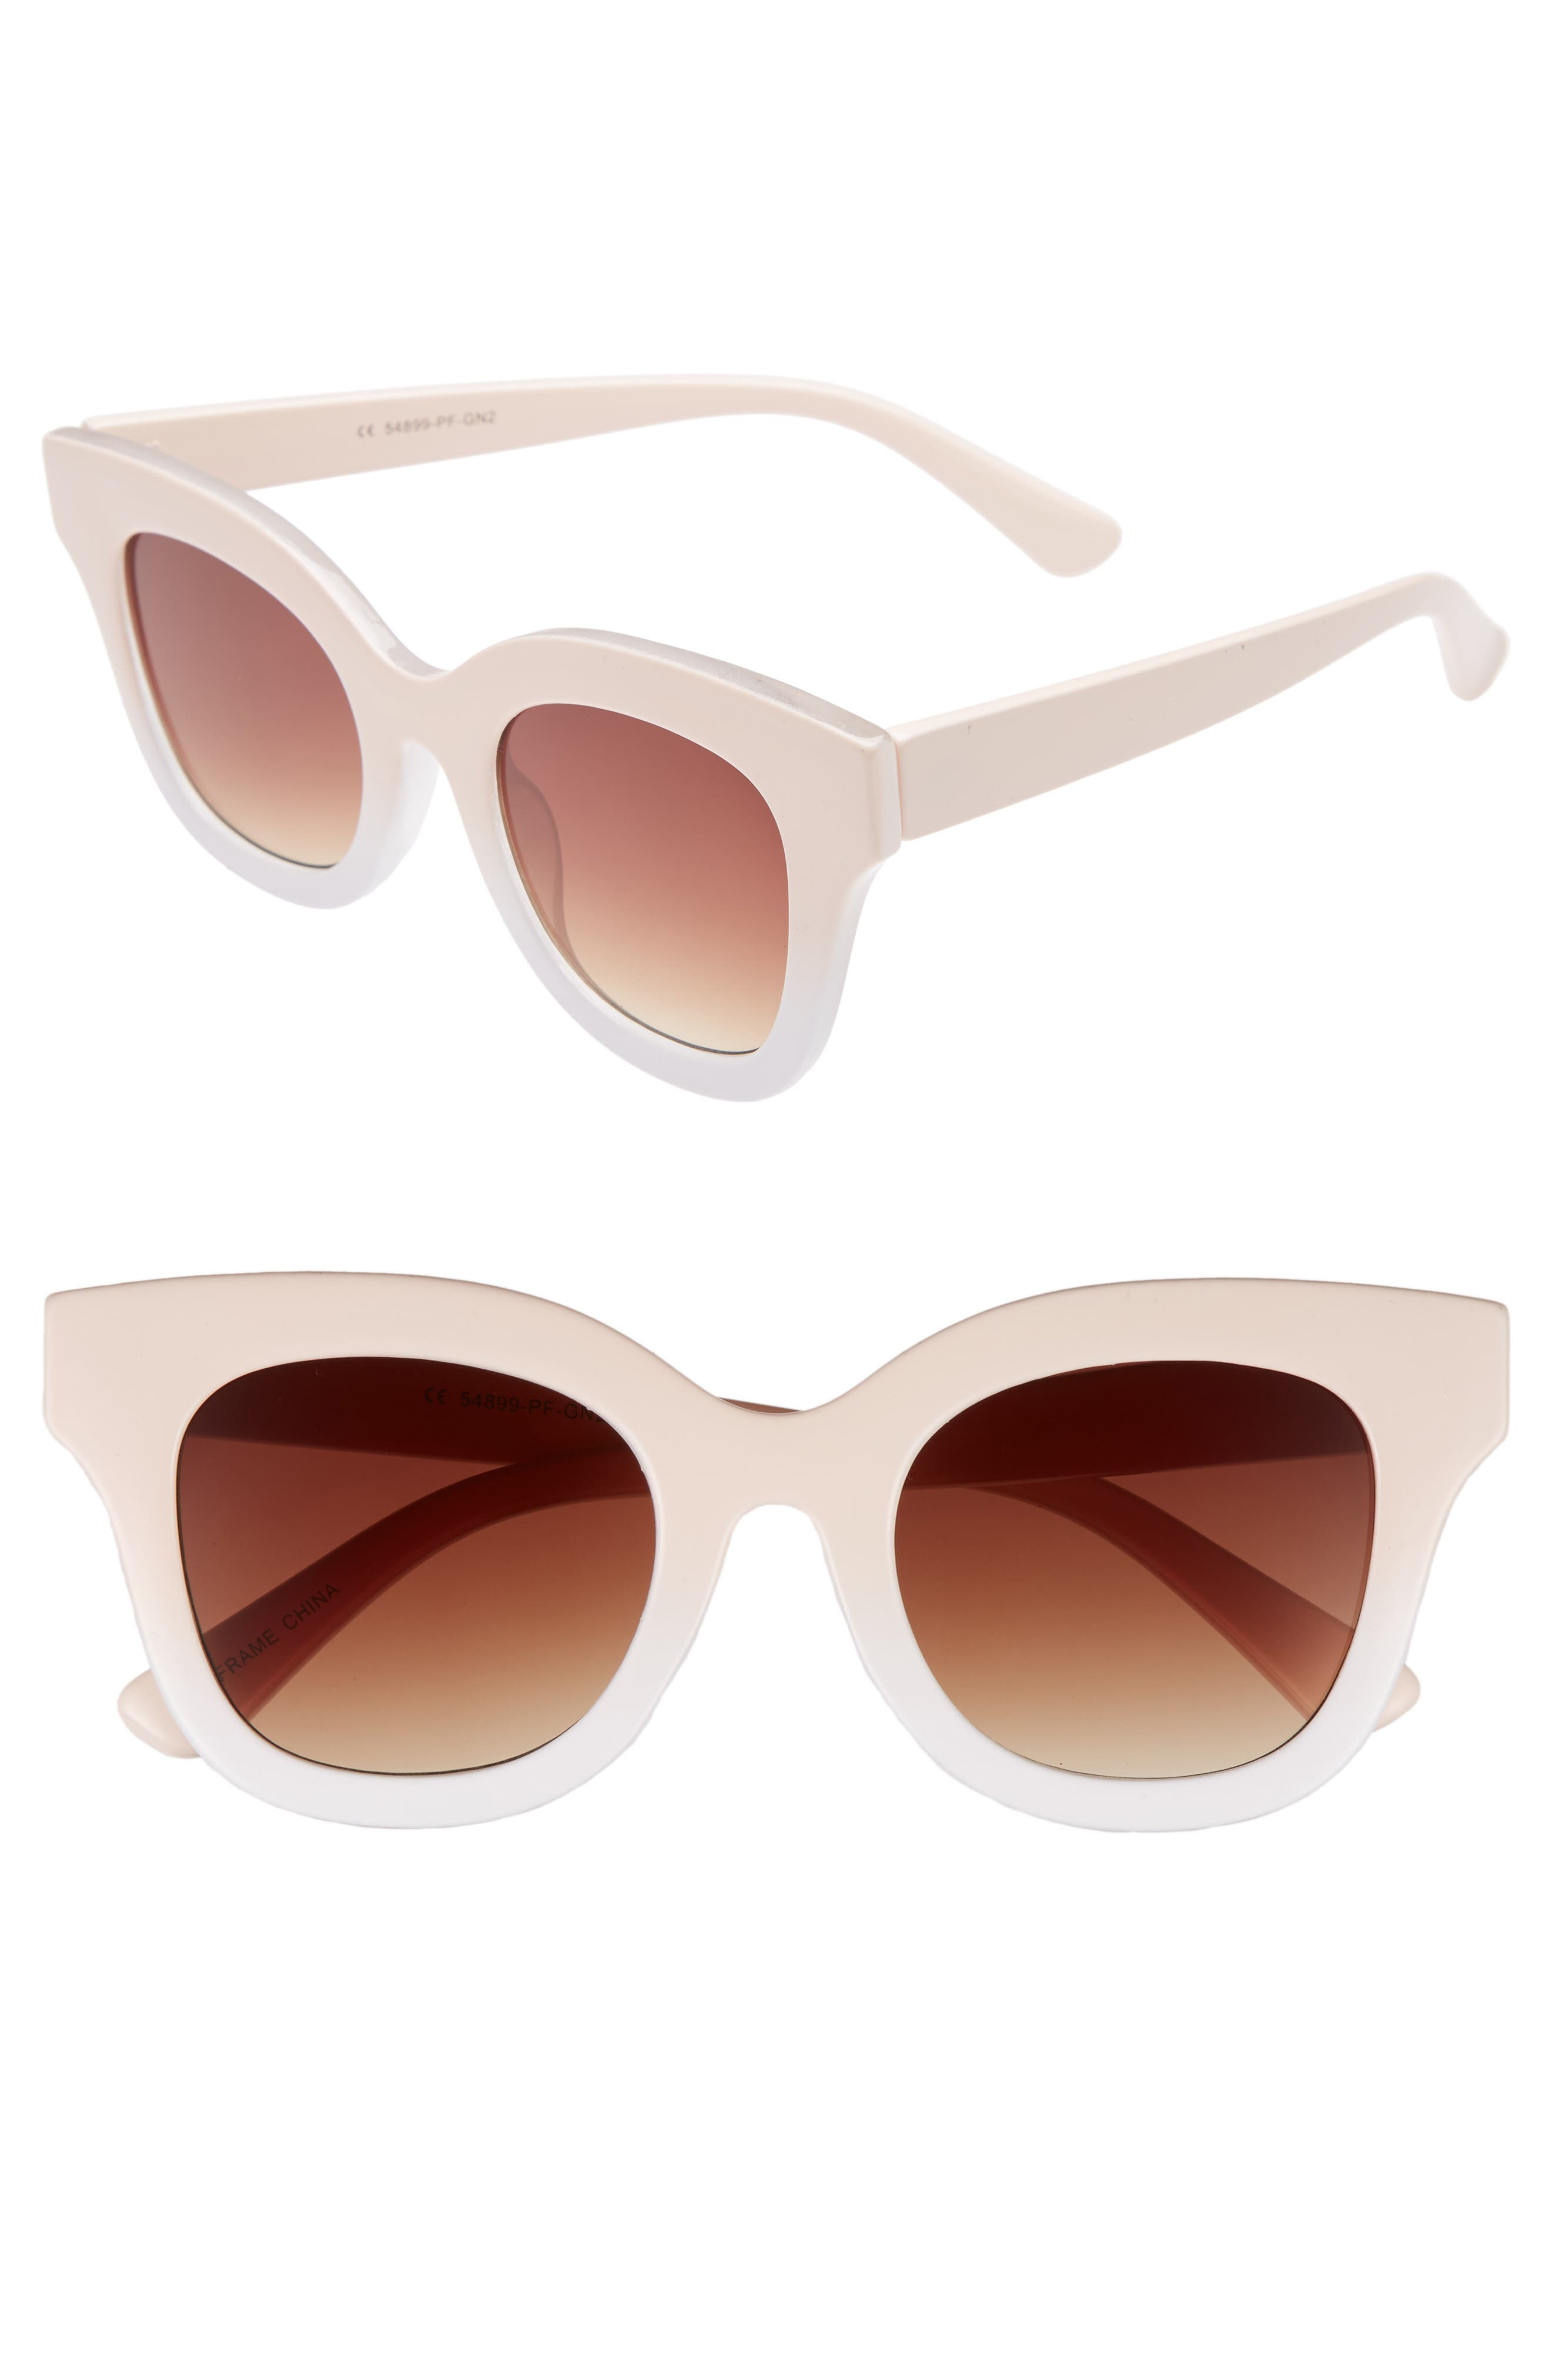 50mm Ombré Square Sunglasses,                             Main thumbnail 1, color,                             650